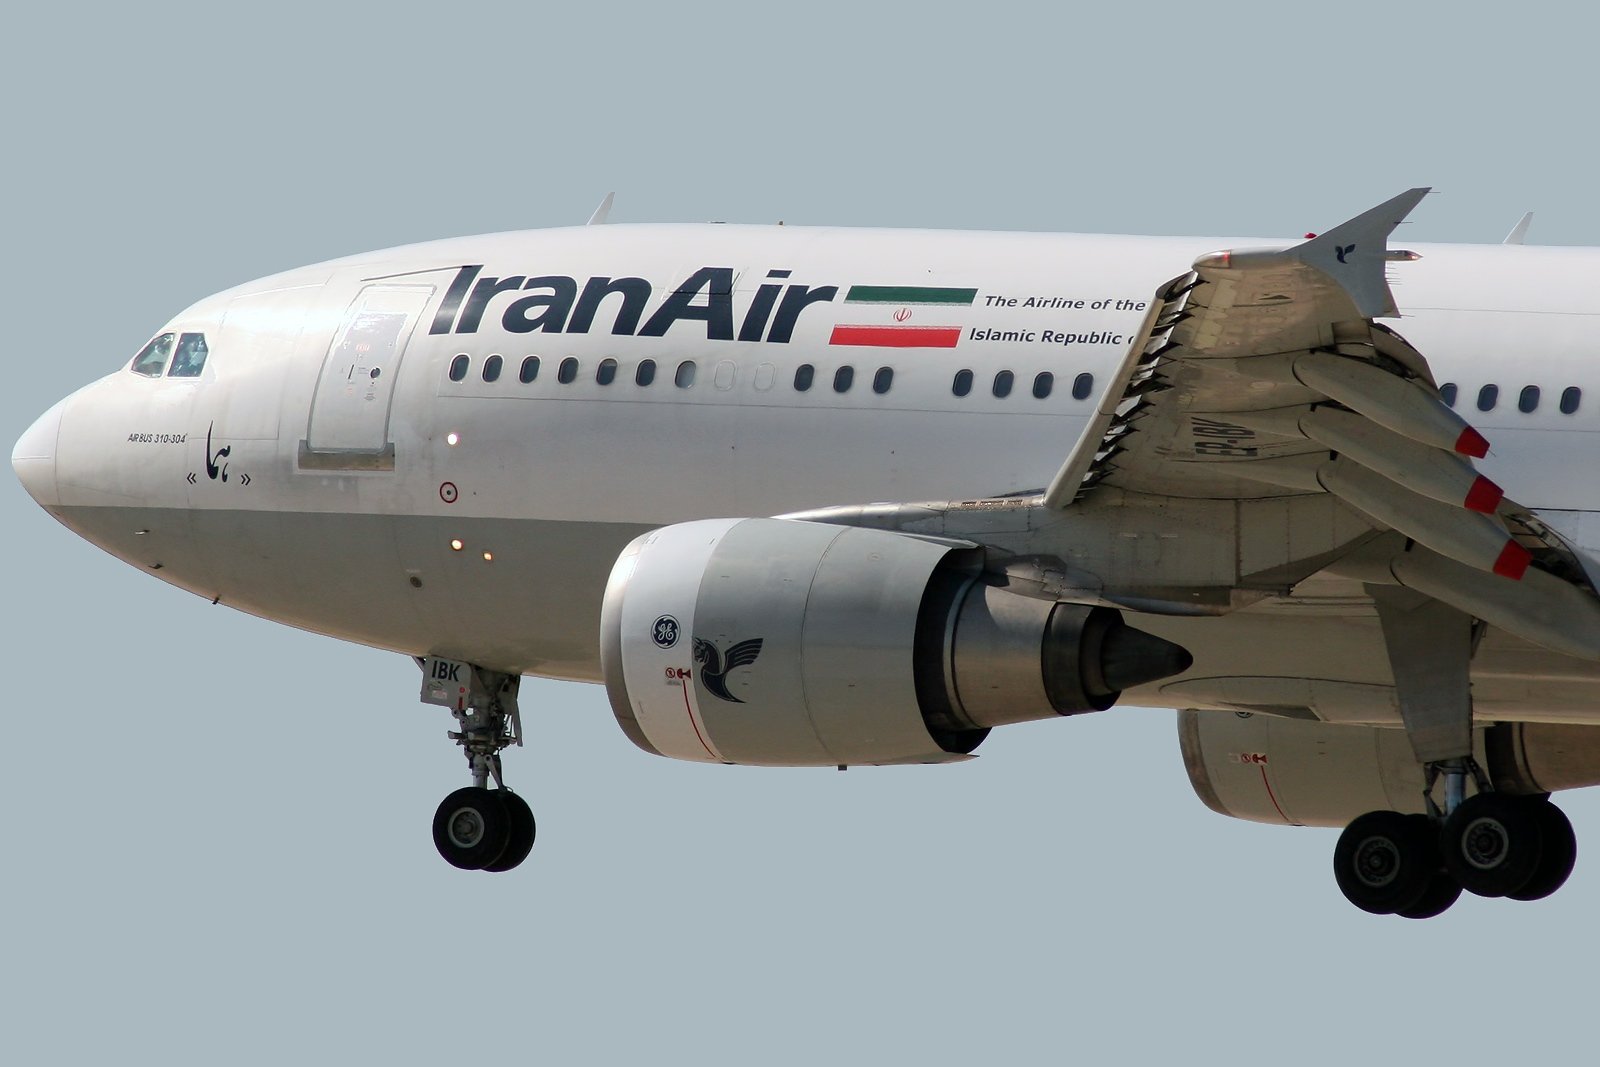 Airbus A300B2-203 Iran Air EP-IBV par Curimedia | P H O T O G R A P H Y sous (CC BY 2.0) https://www.flickr.com/photos/curimedia/8740198931/ https://creativecommons.org/licenses/by/2.0/